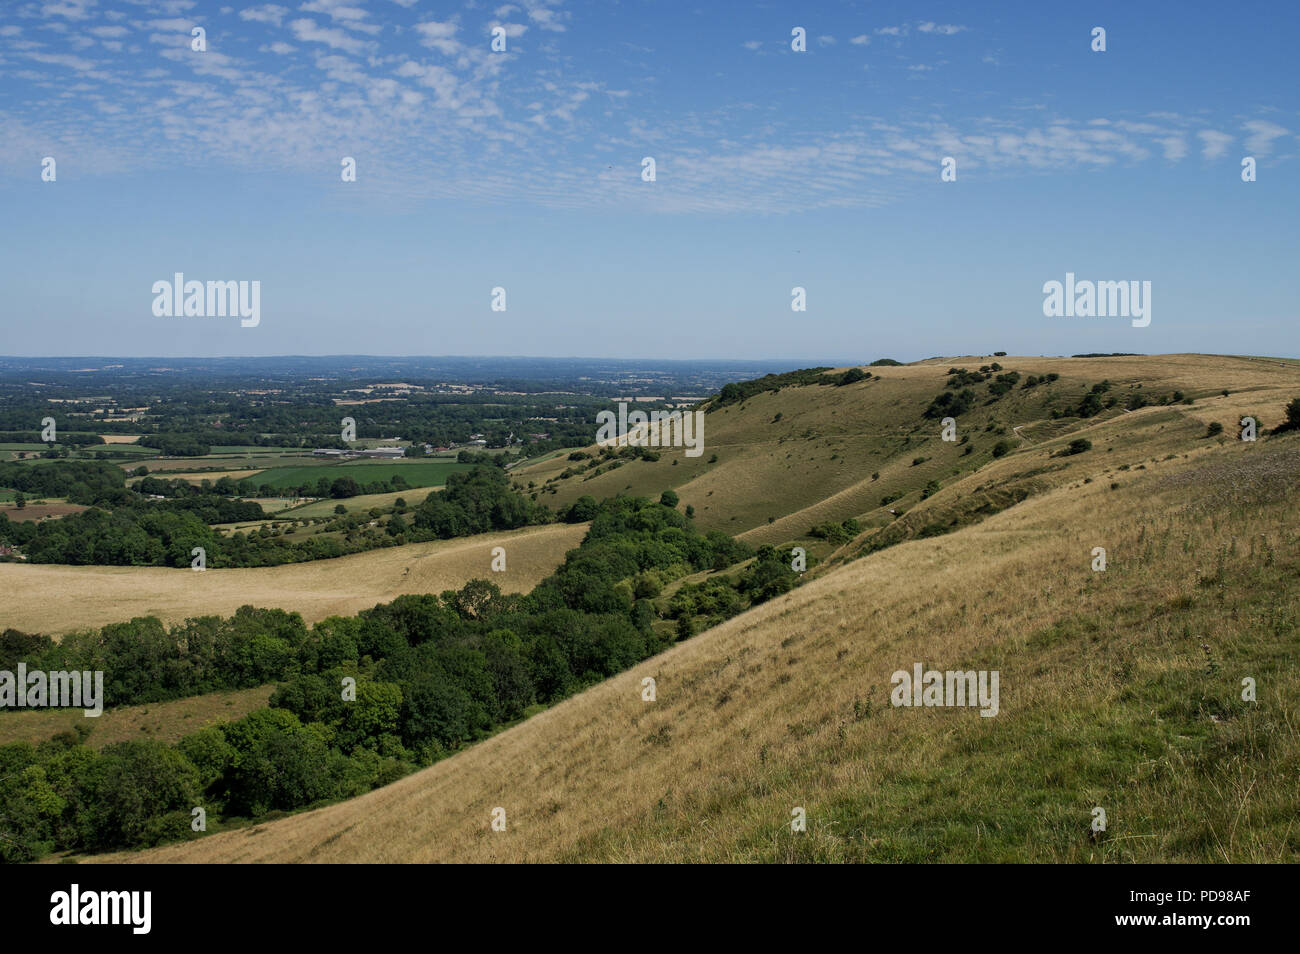 View of the South Downs from Ditchling Beacon on a sunny summer day - West Sussex, UK - Stock Image